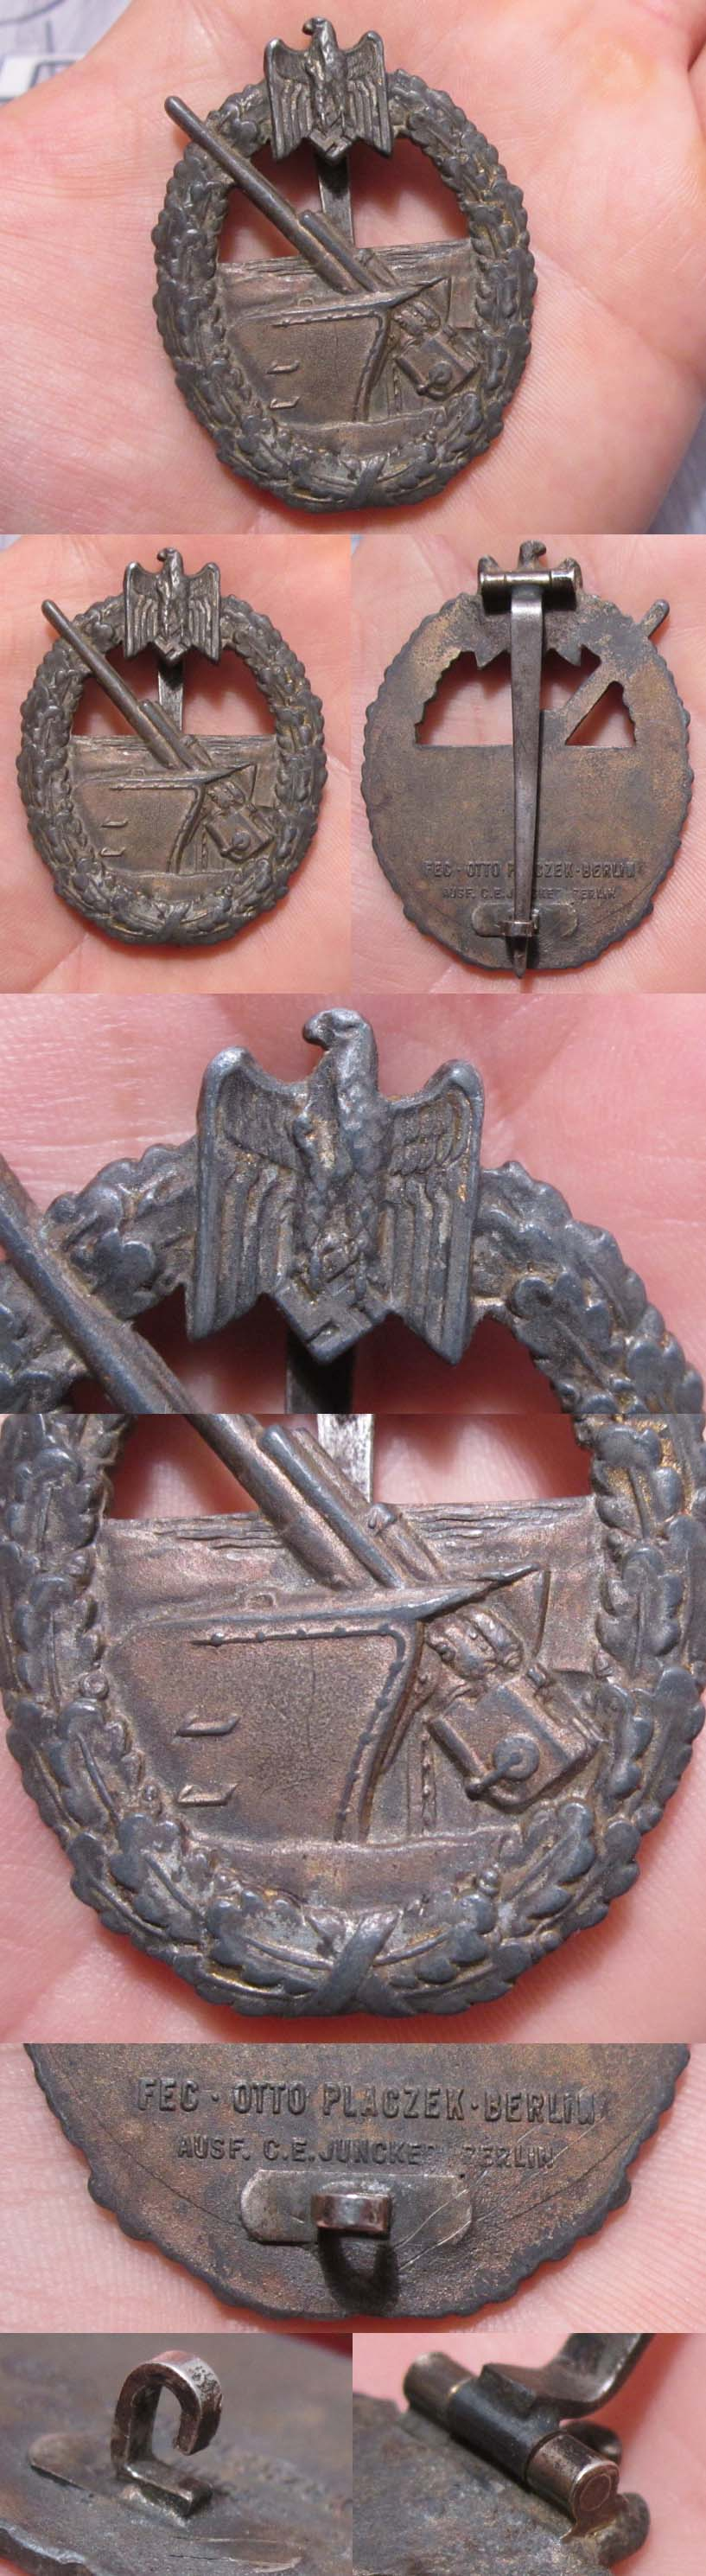 Coastal Artillery Badge by Juncker